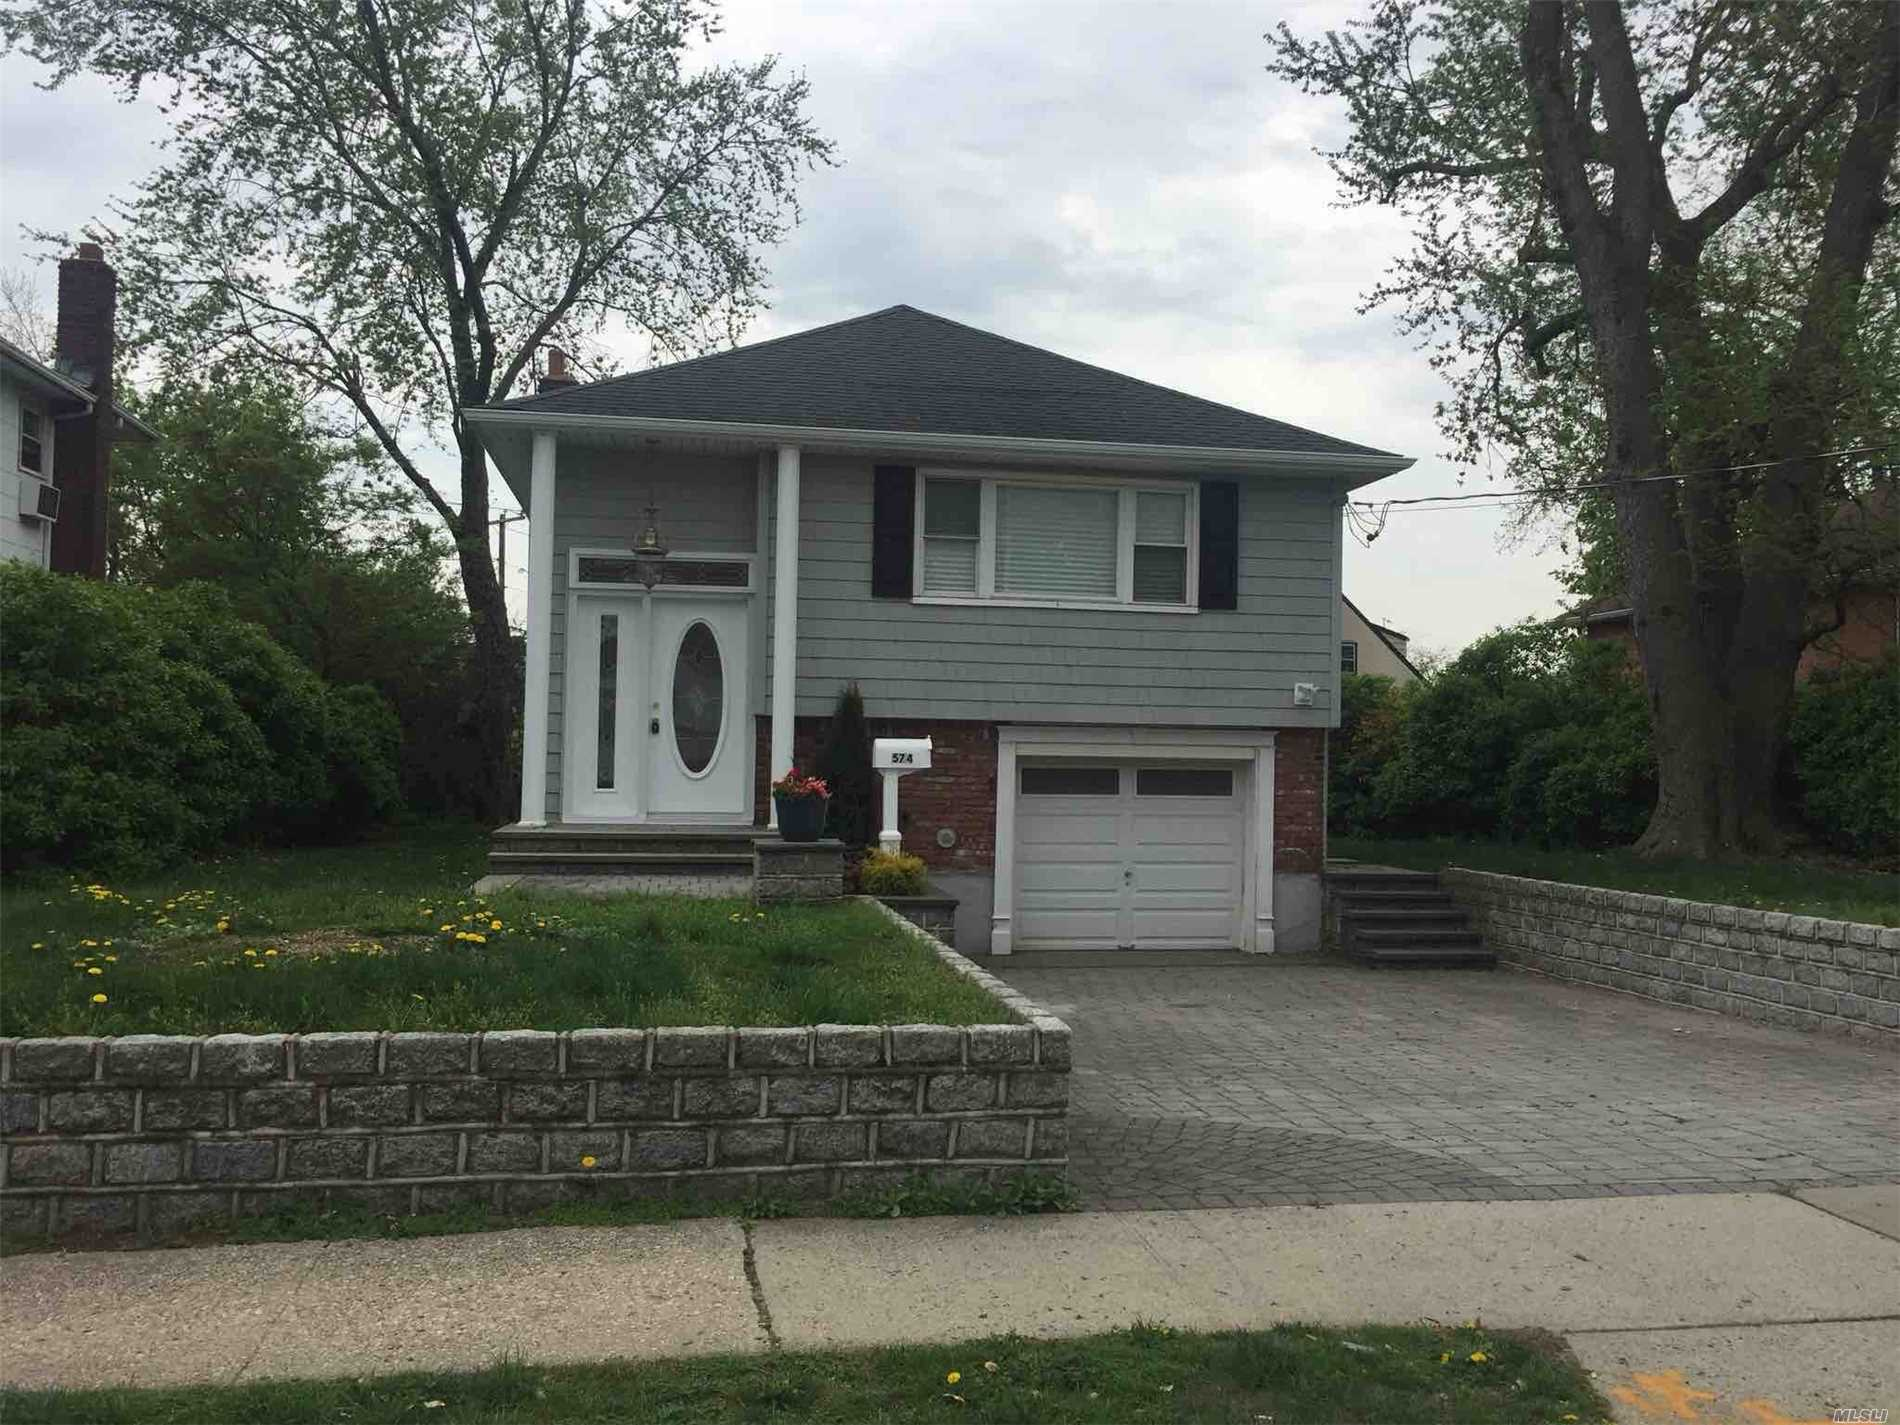 Move Right In To This Renovated Hi Ranch Style Home. New Beautiful Kitchen And Baths. Stainless Steel Appliances. New Boiler And Hot Water Tank. Property Completely Renovated From Top To Bottom. Centrally Located To All. Don't Miss This Opportunity!